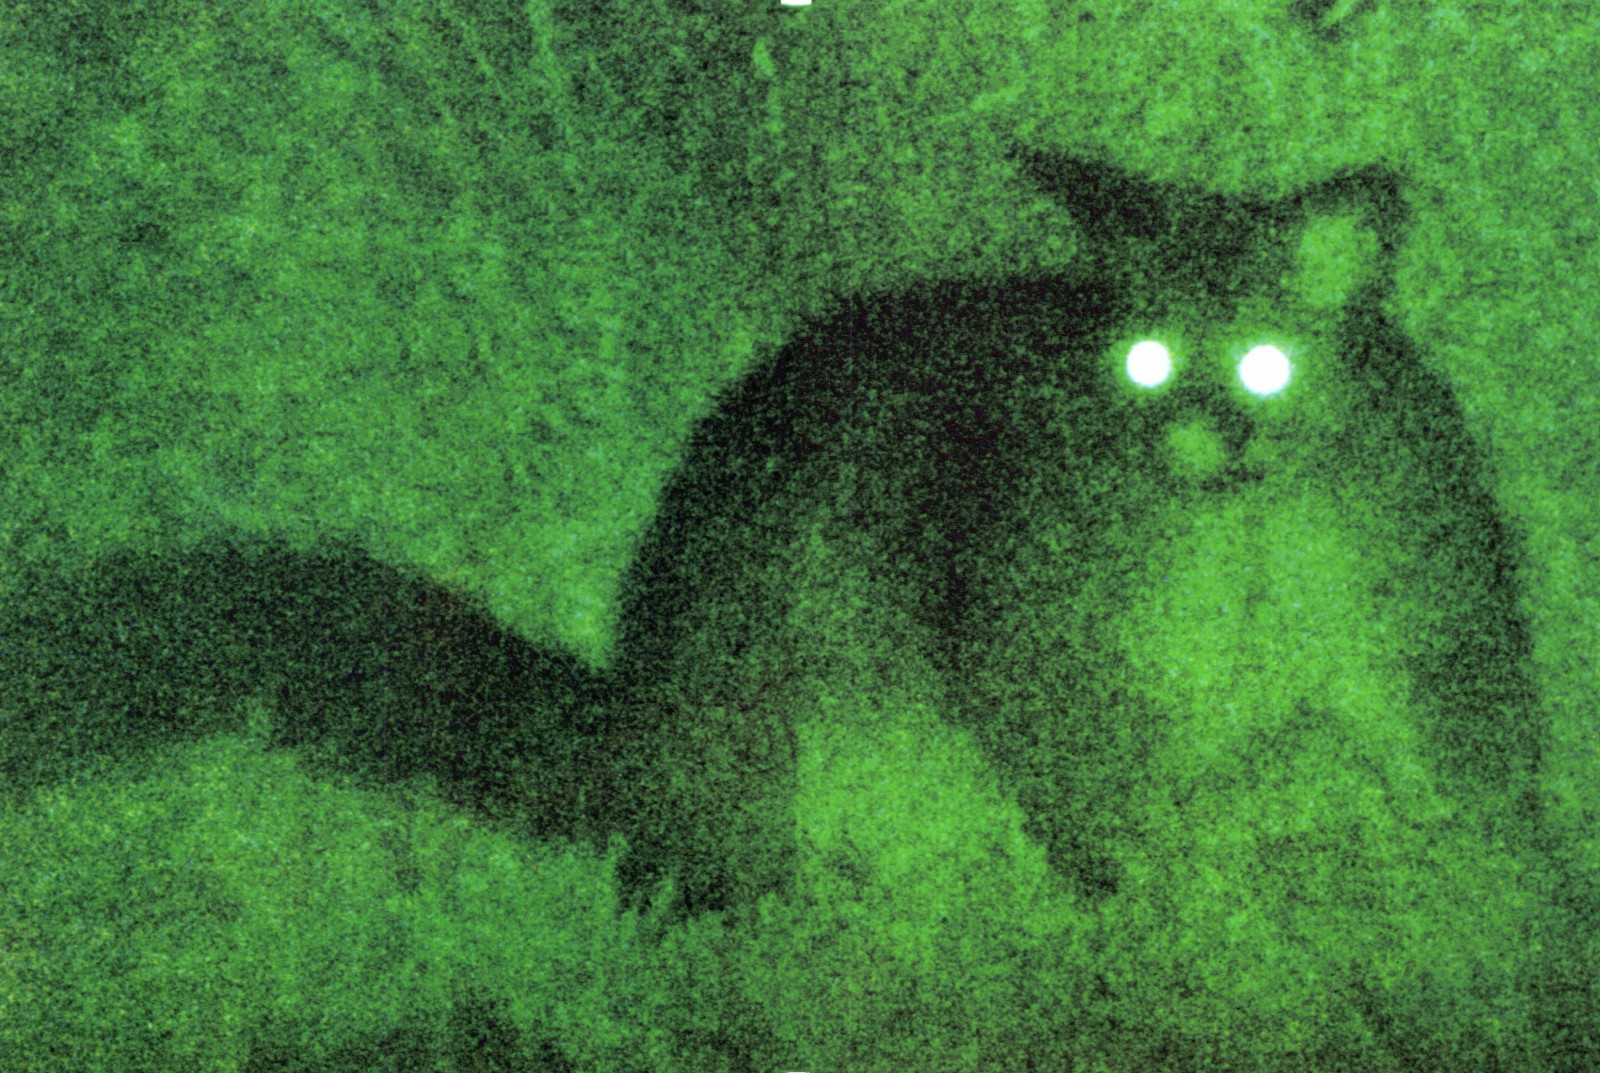 Photographed with night vision equipment, a possum's eye glow ghostly white in the darkness. Possums emerge from their dens after sunset and remain in the open for most of the night. They feed in several short bursts, interspersed with periods of grooming, travel between trees and complete inactivity.